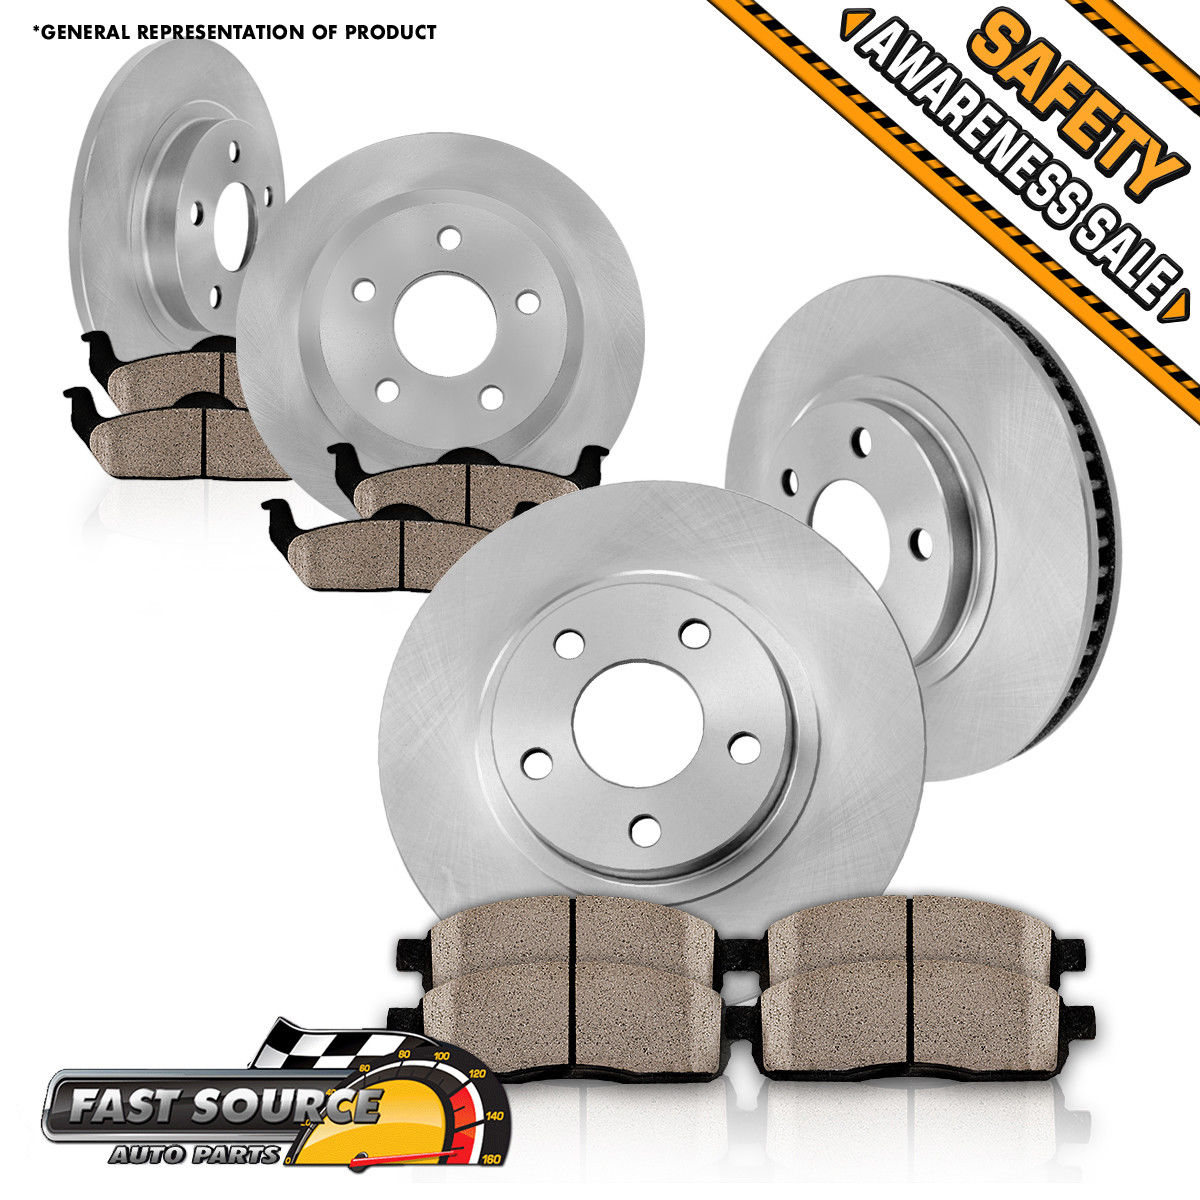 For Toyota Avalon Camry SE XLE Sienna Solara Front Brake Rotors /& Ceramic Pads